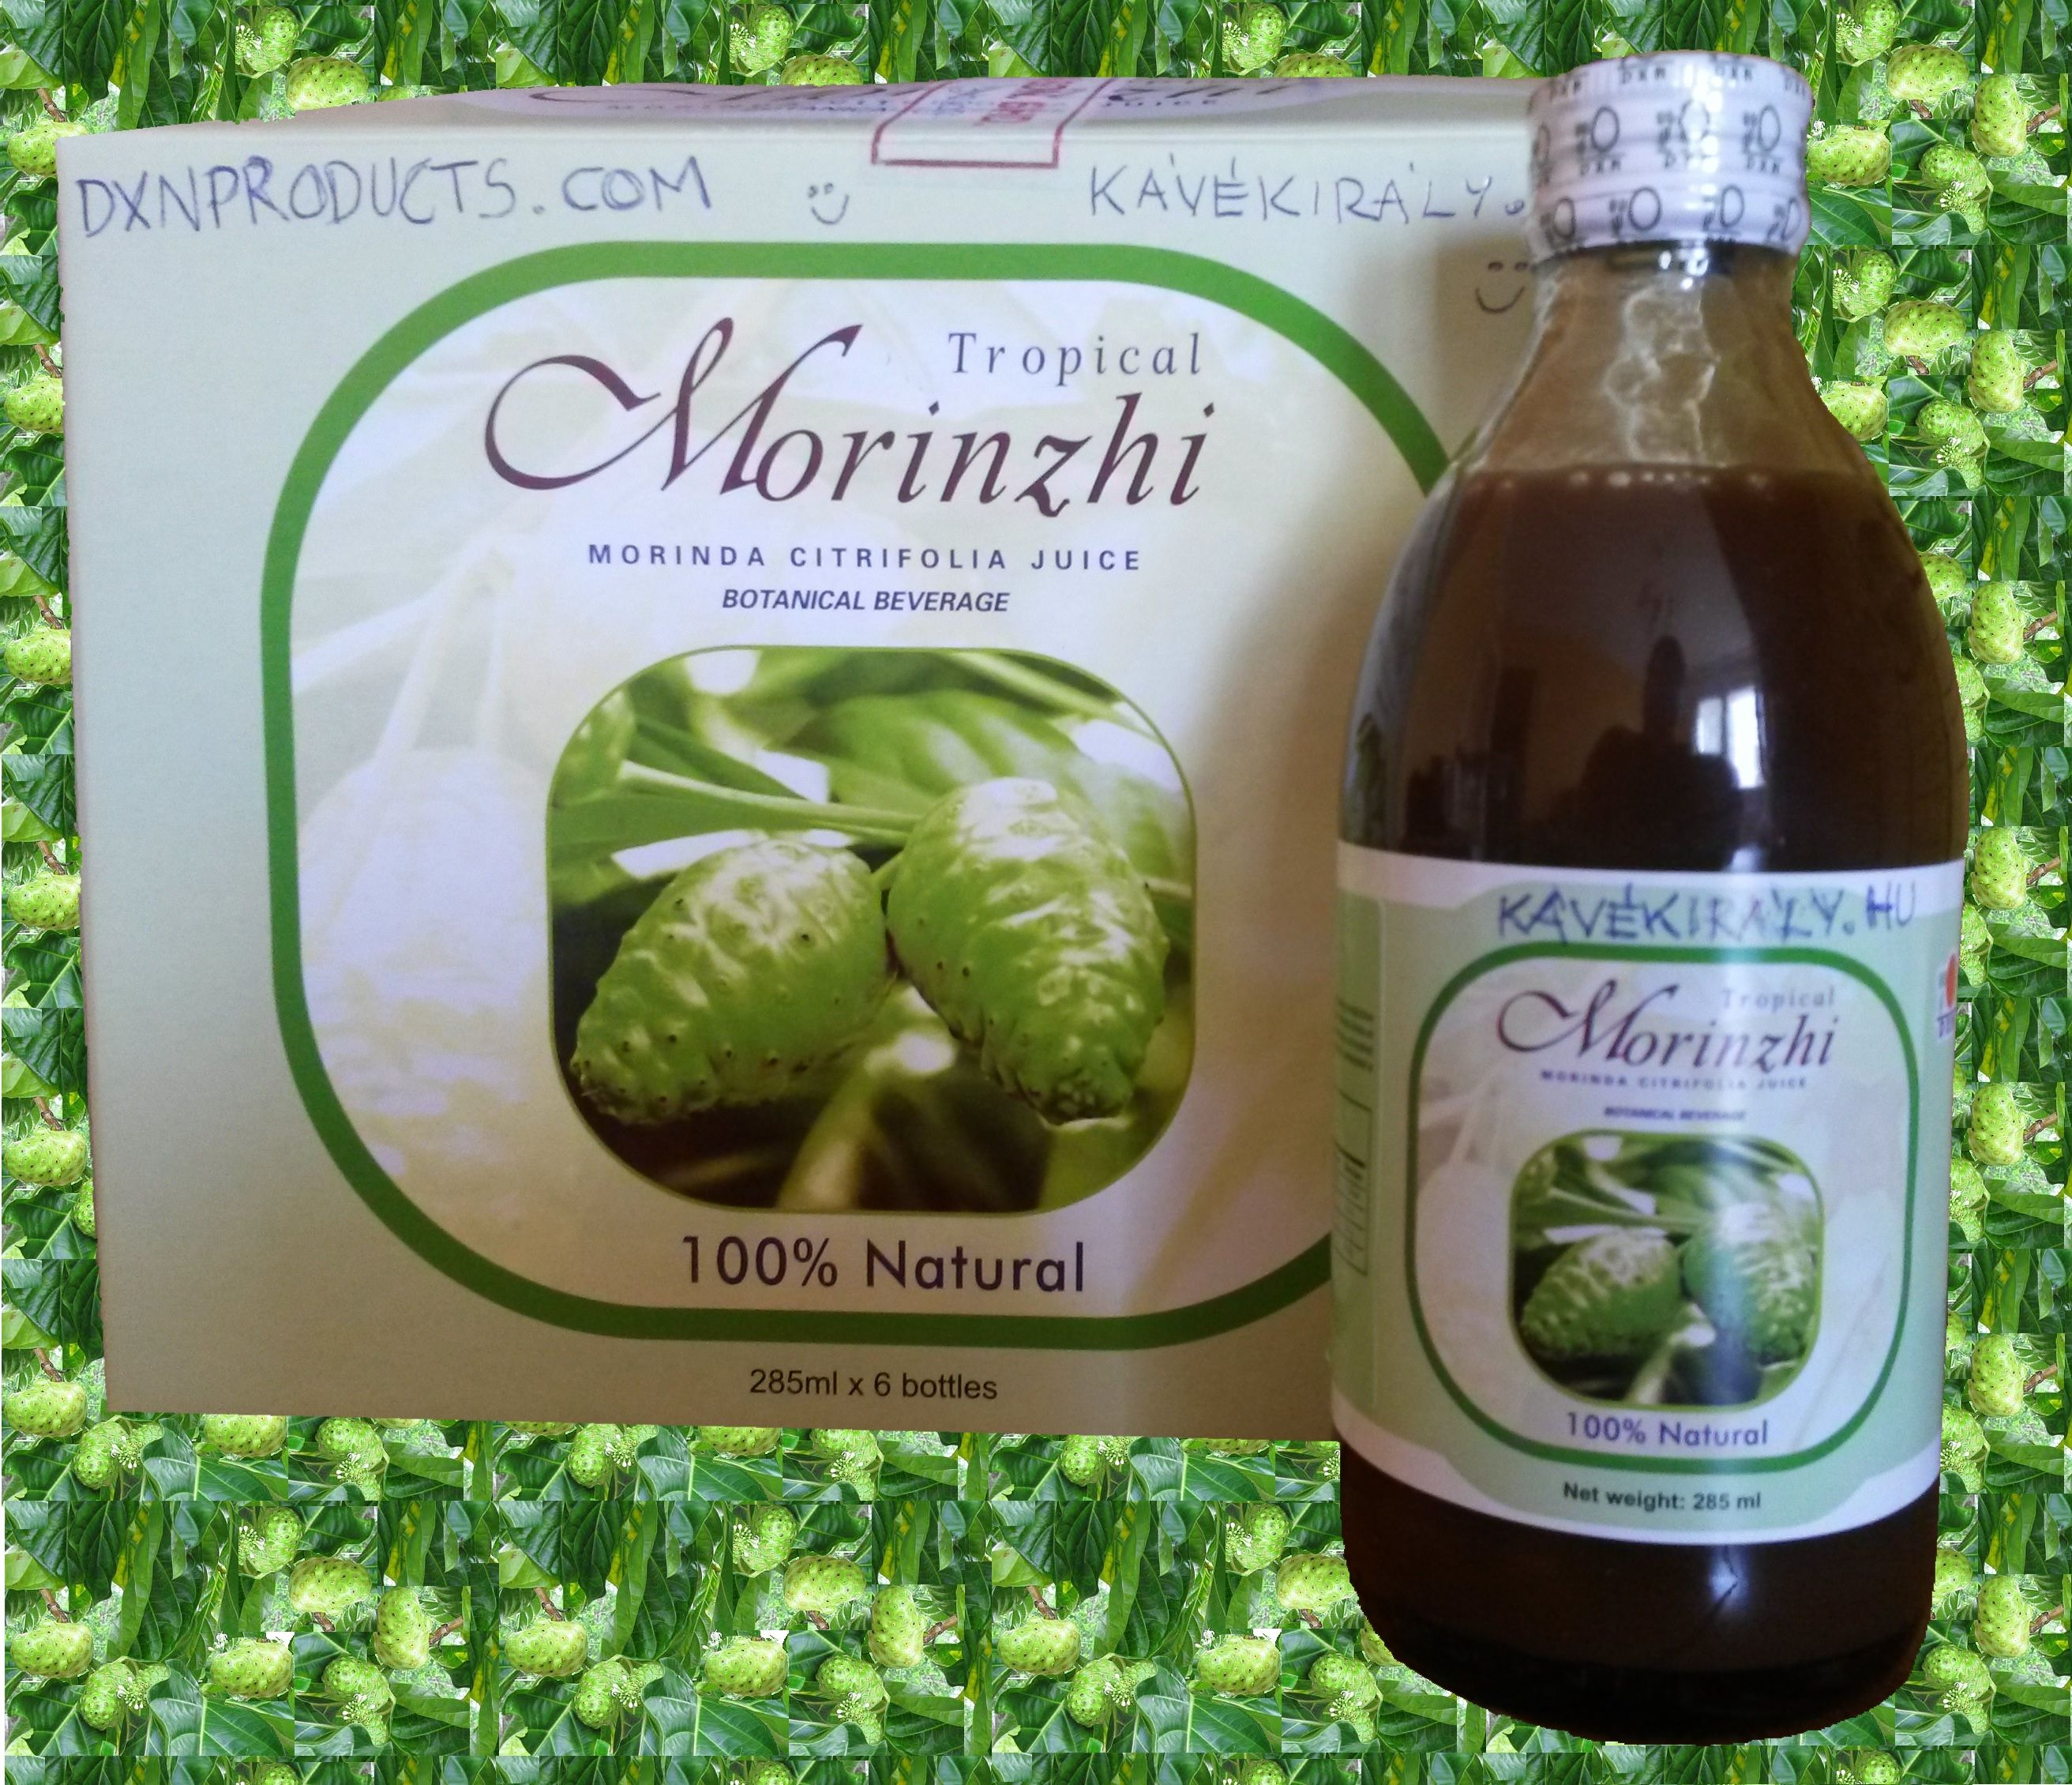 Noni fruit originates from the French Polynesian archipelago